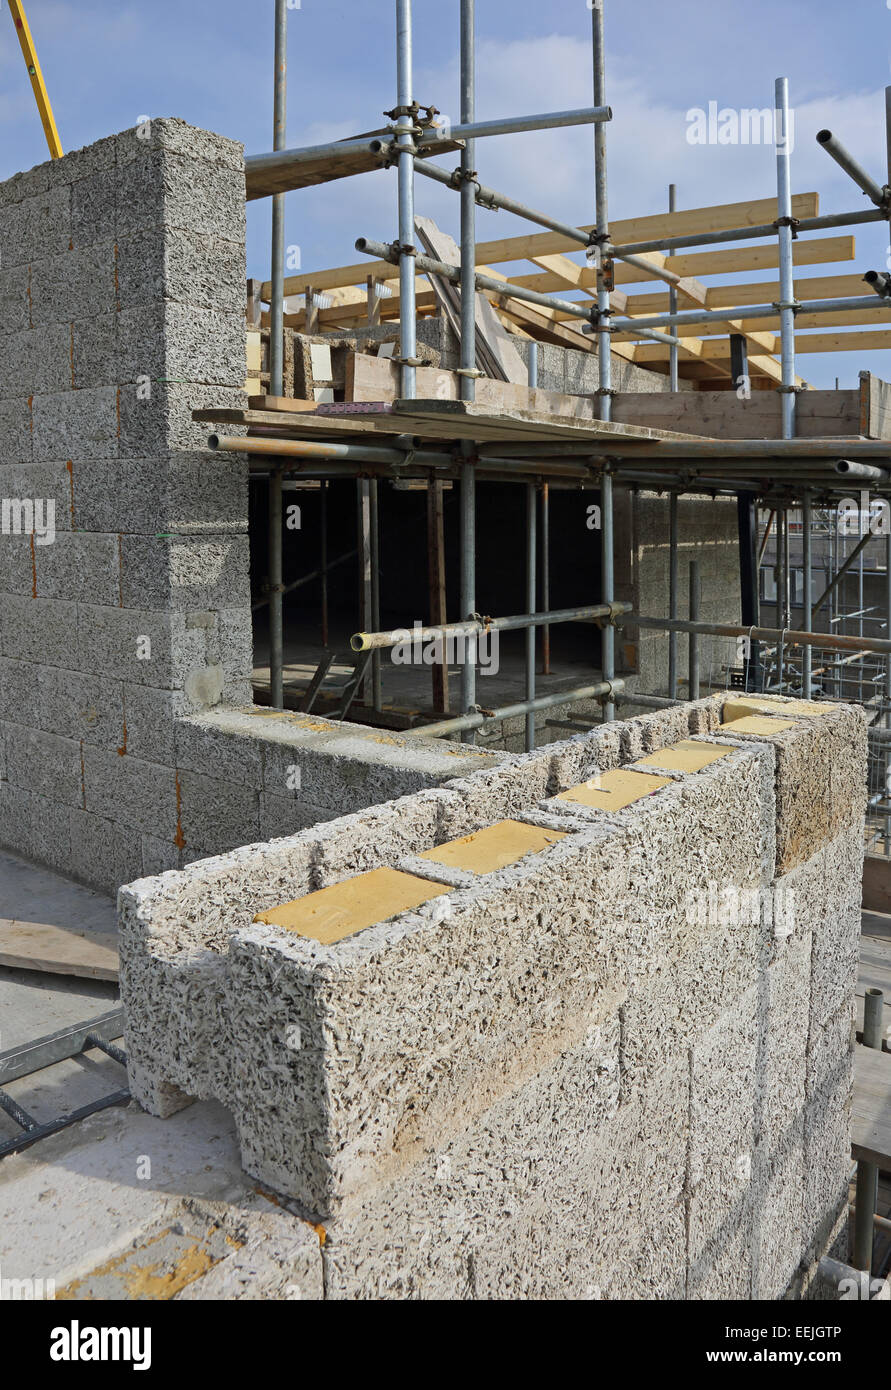 Durisol Low Energy Cement Bonded Wood Fibre Blocks Being